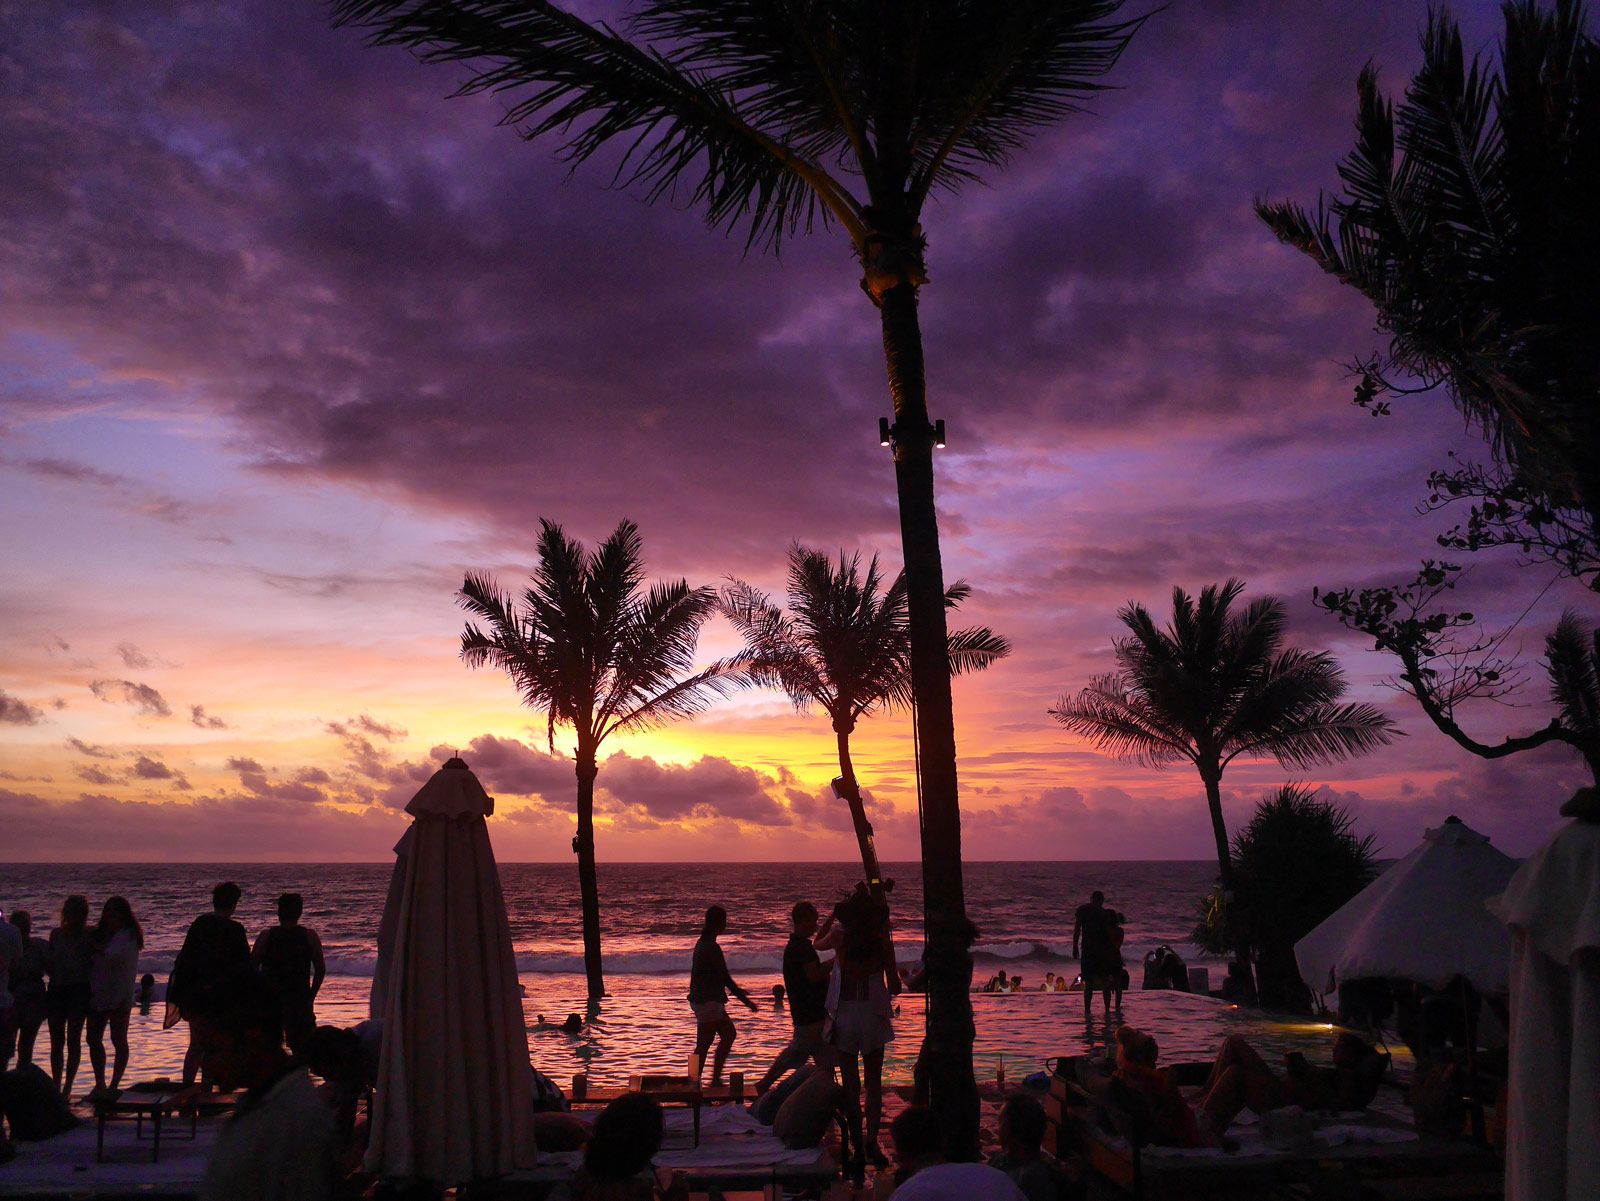 Watching the Sunset at Potato Head Beach Club - Bali, Indonesia